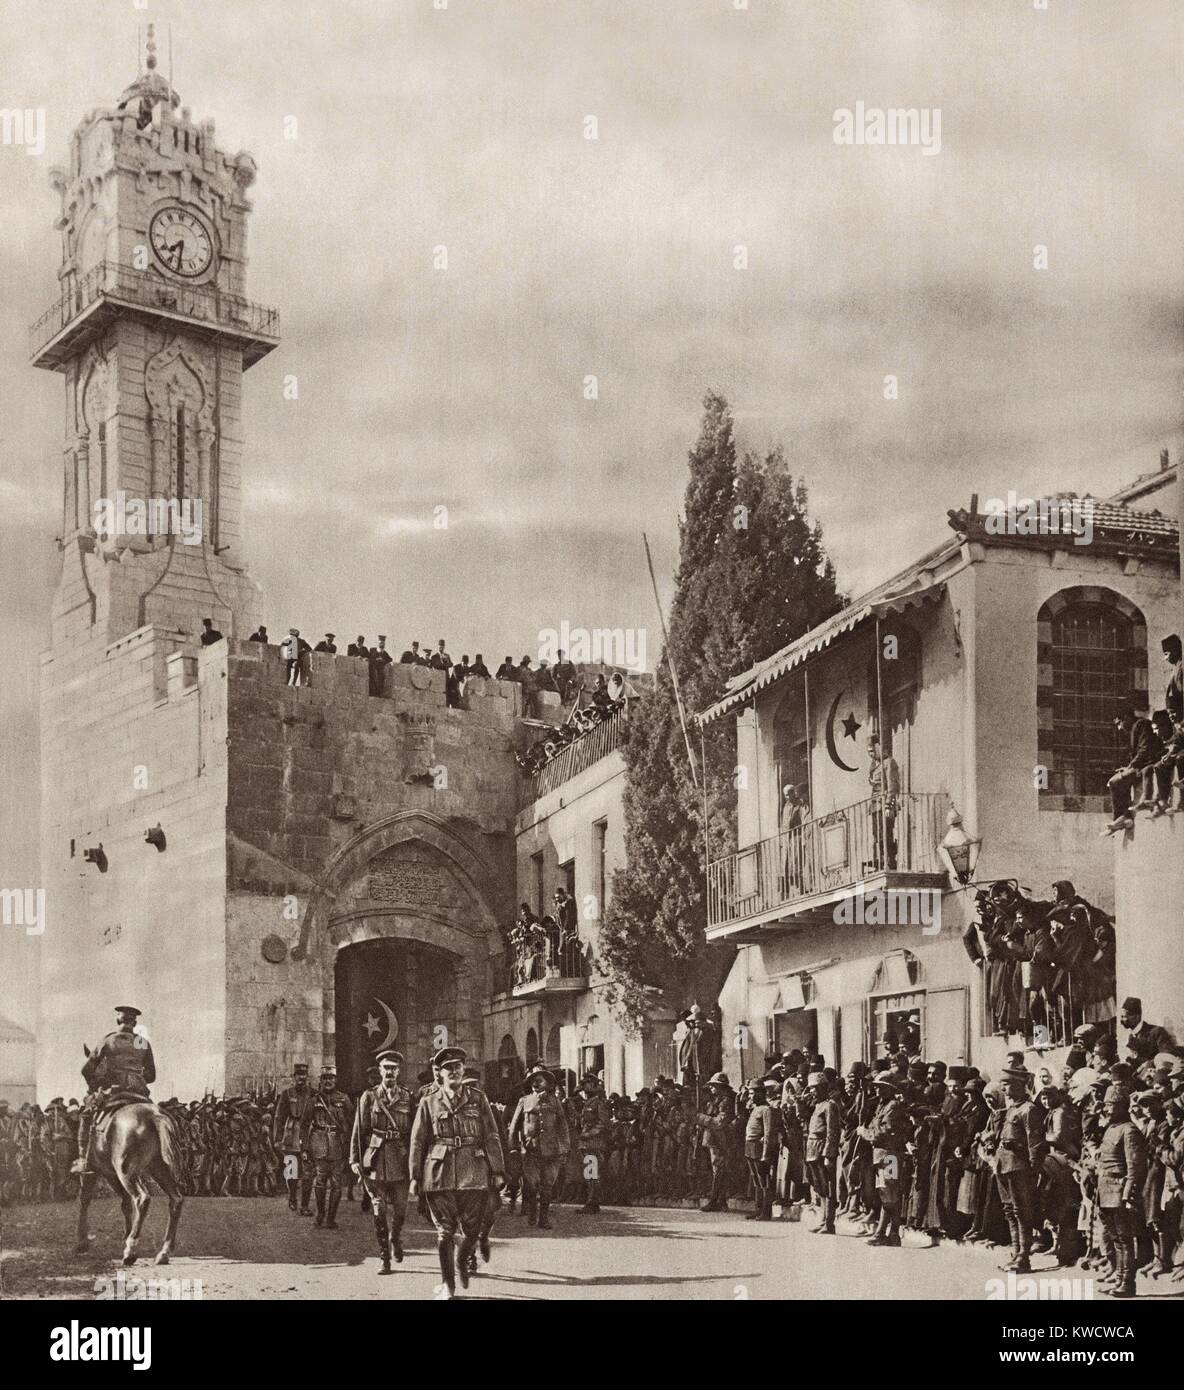 World War 1 in the Middle East. General Edmund Allenby, entering Jerusalem through the Jaffa Gate. He walked in - Stock Image